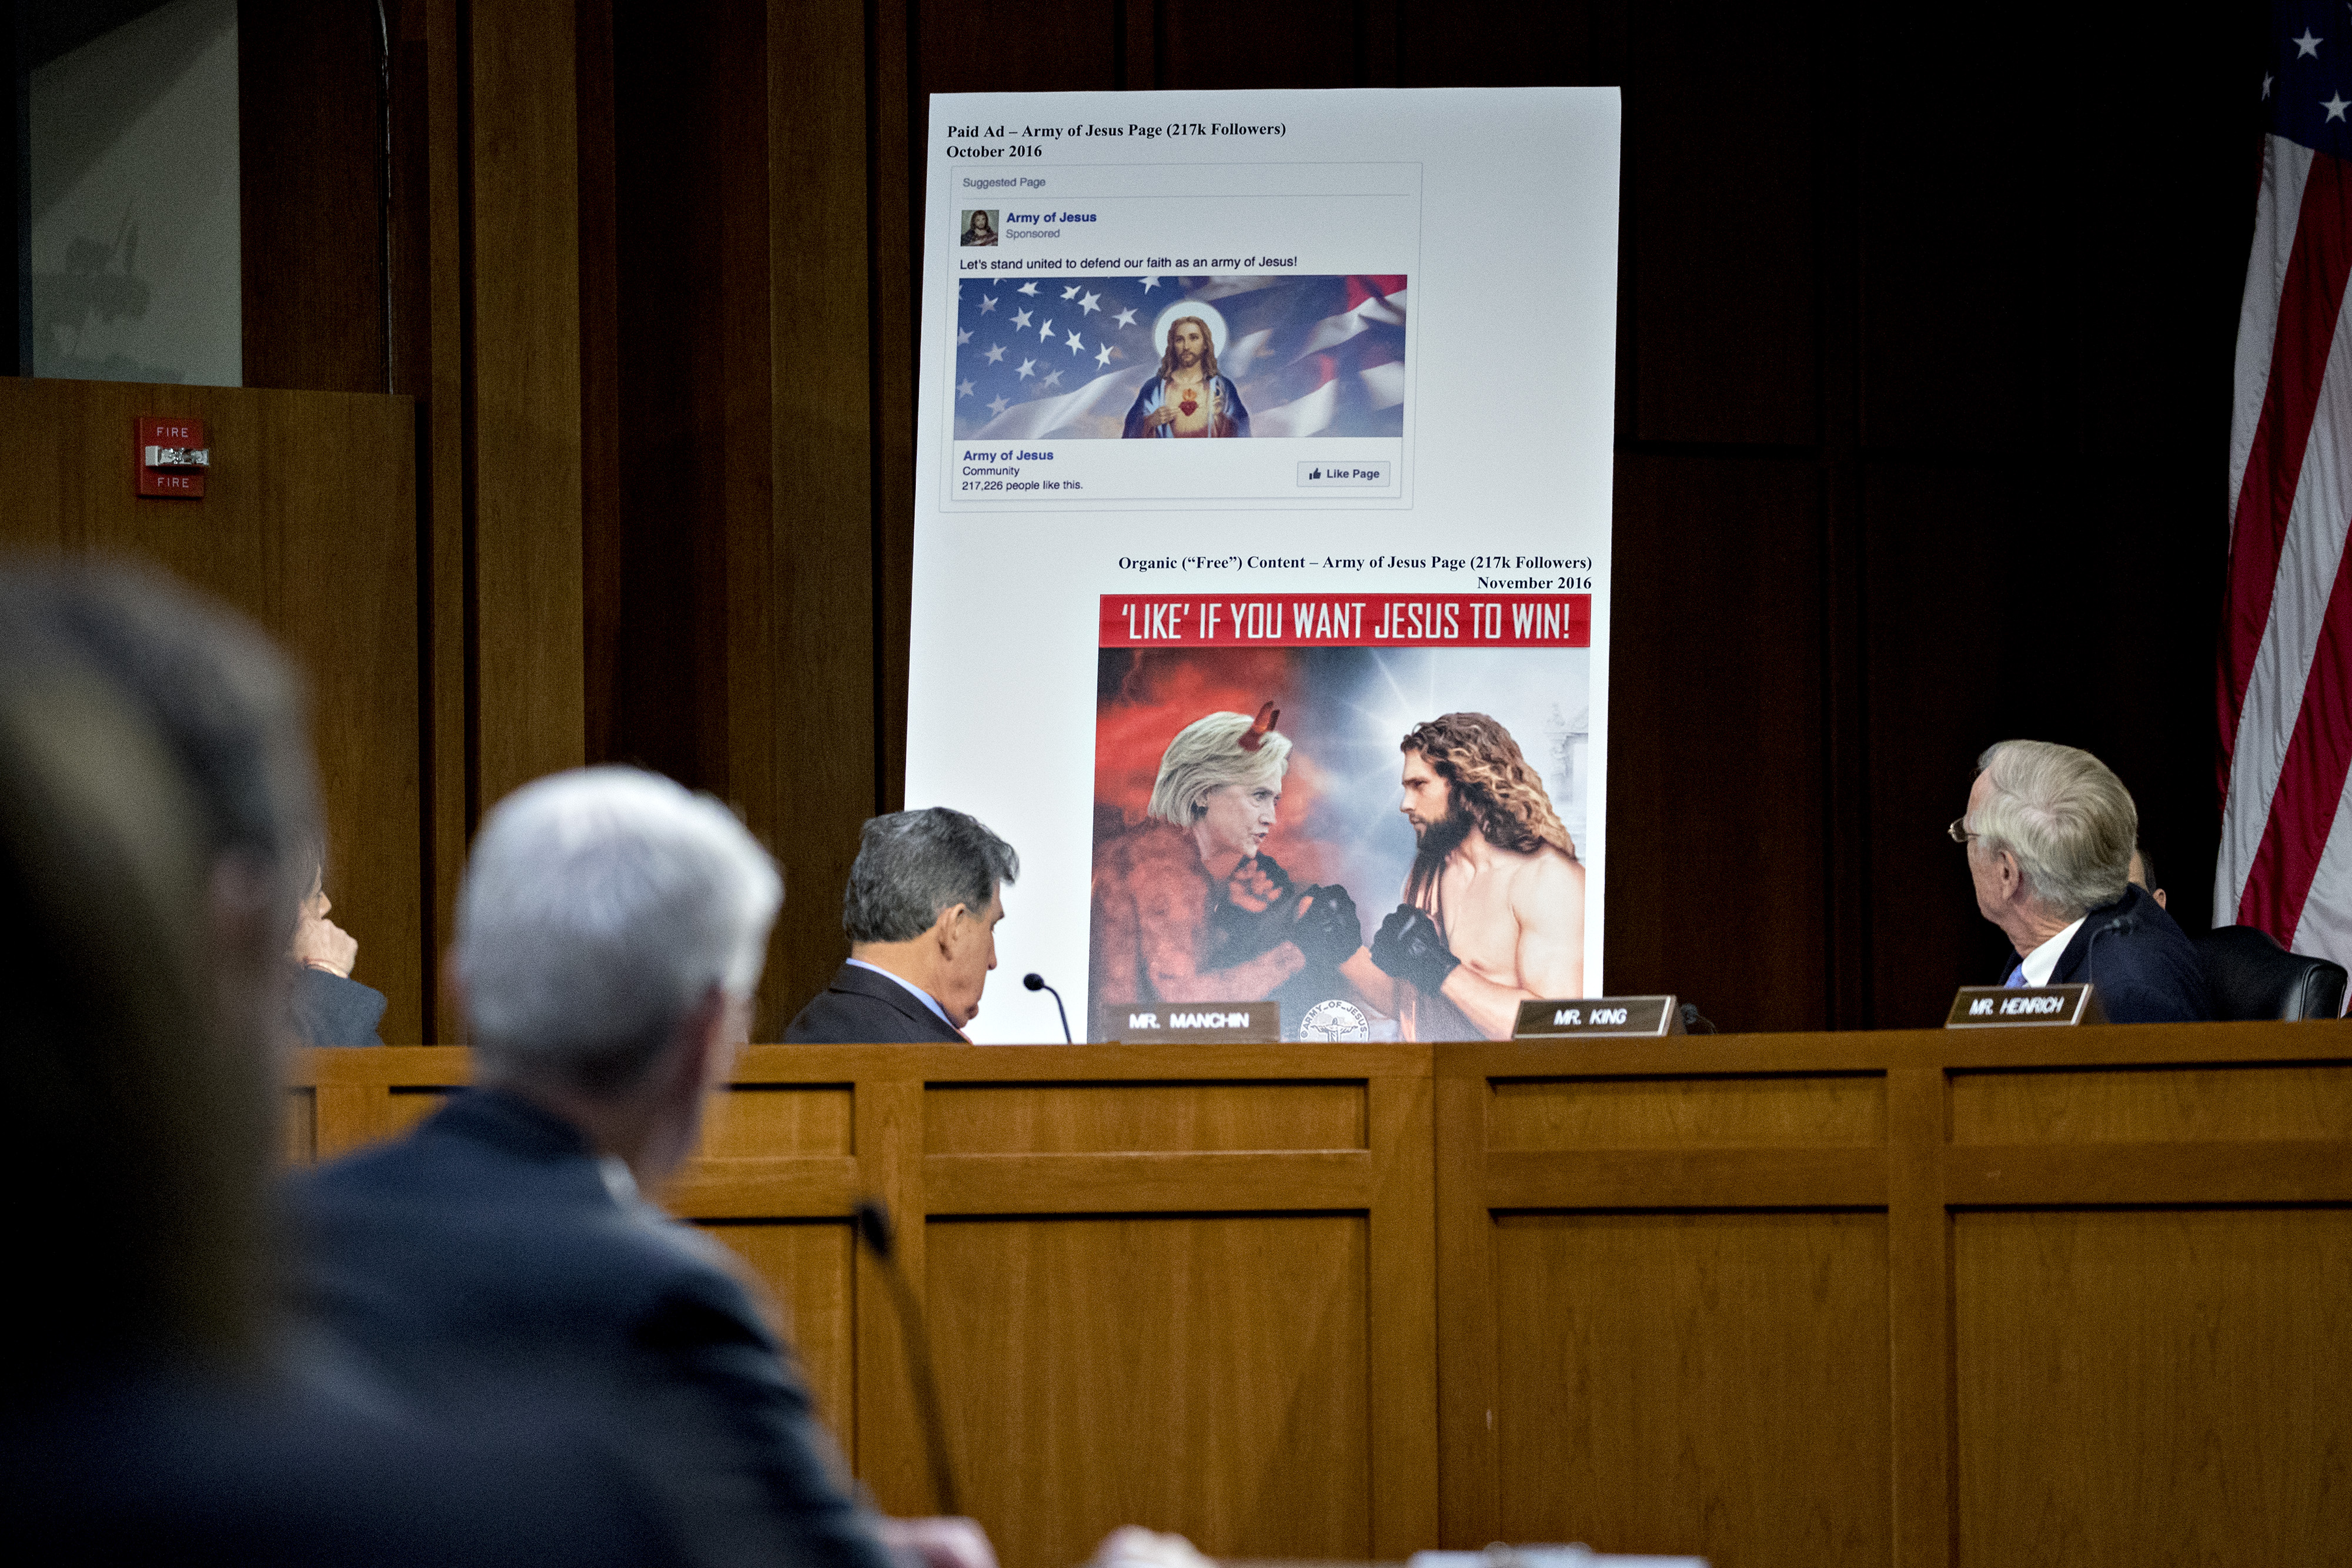 A display showing a social media post stands during a Senate Intelligence Committee hearing on social media influence in the 2016 U.S. elections in Washington, D.C., U.S., on Wednesday,